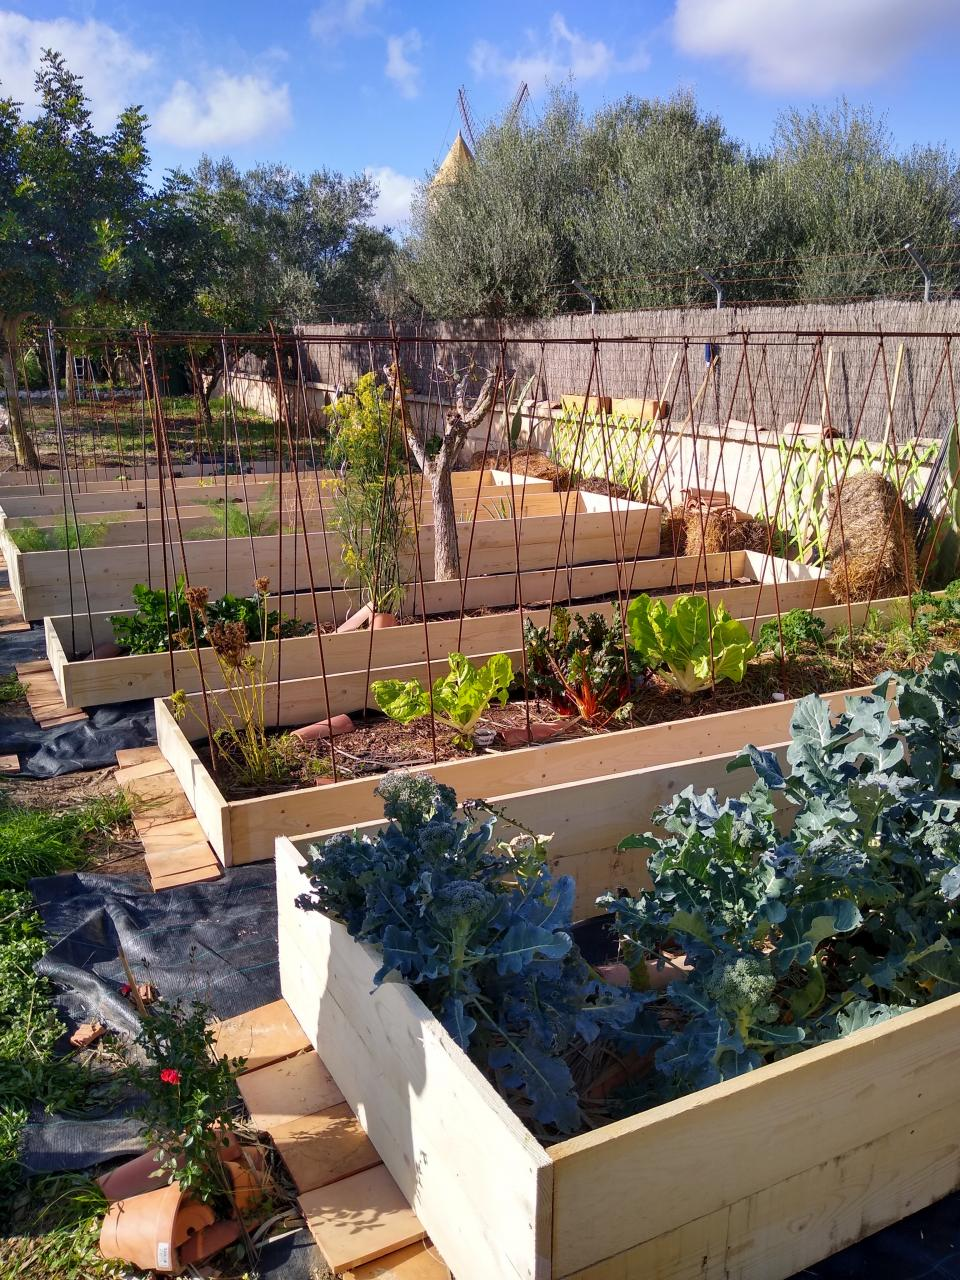 The new raised beds